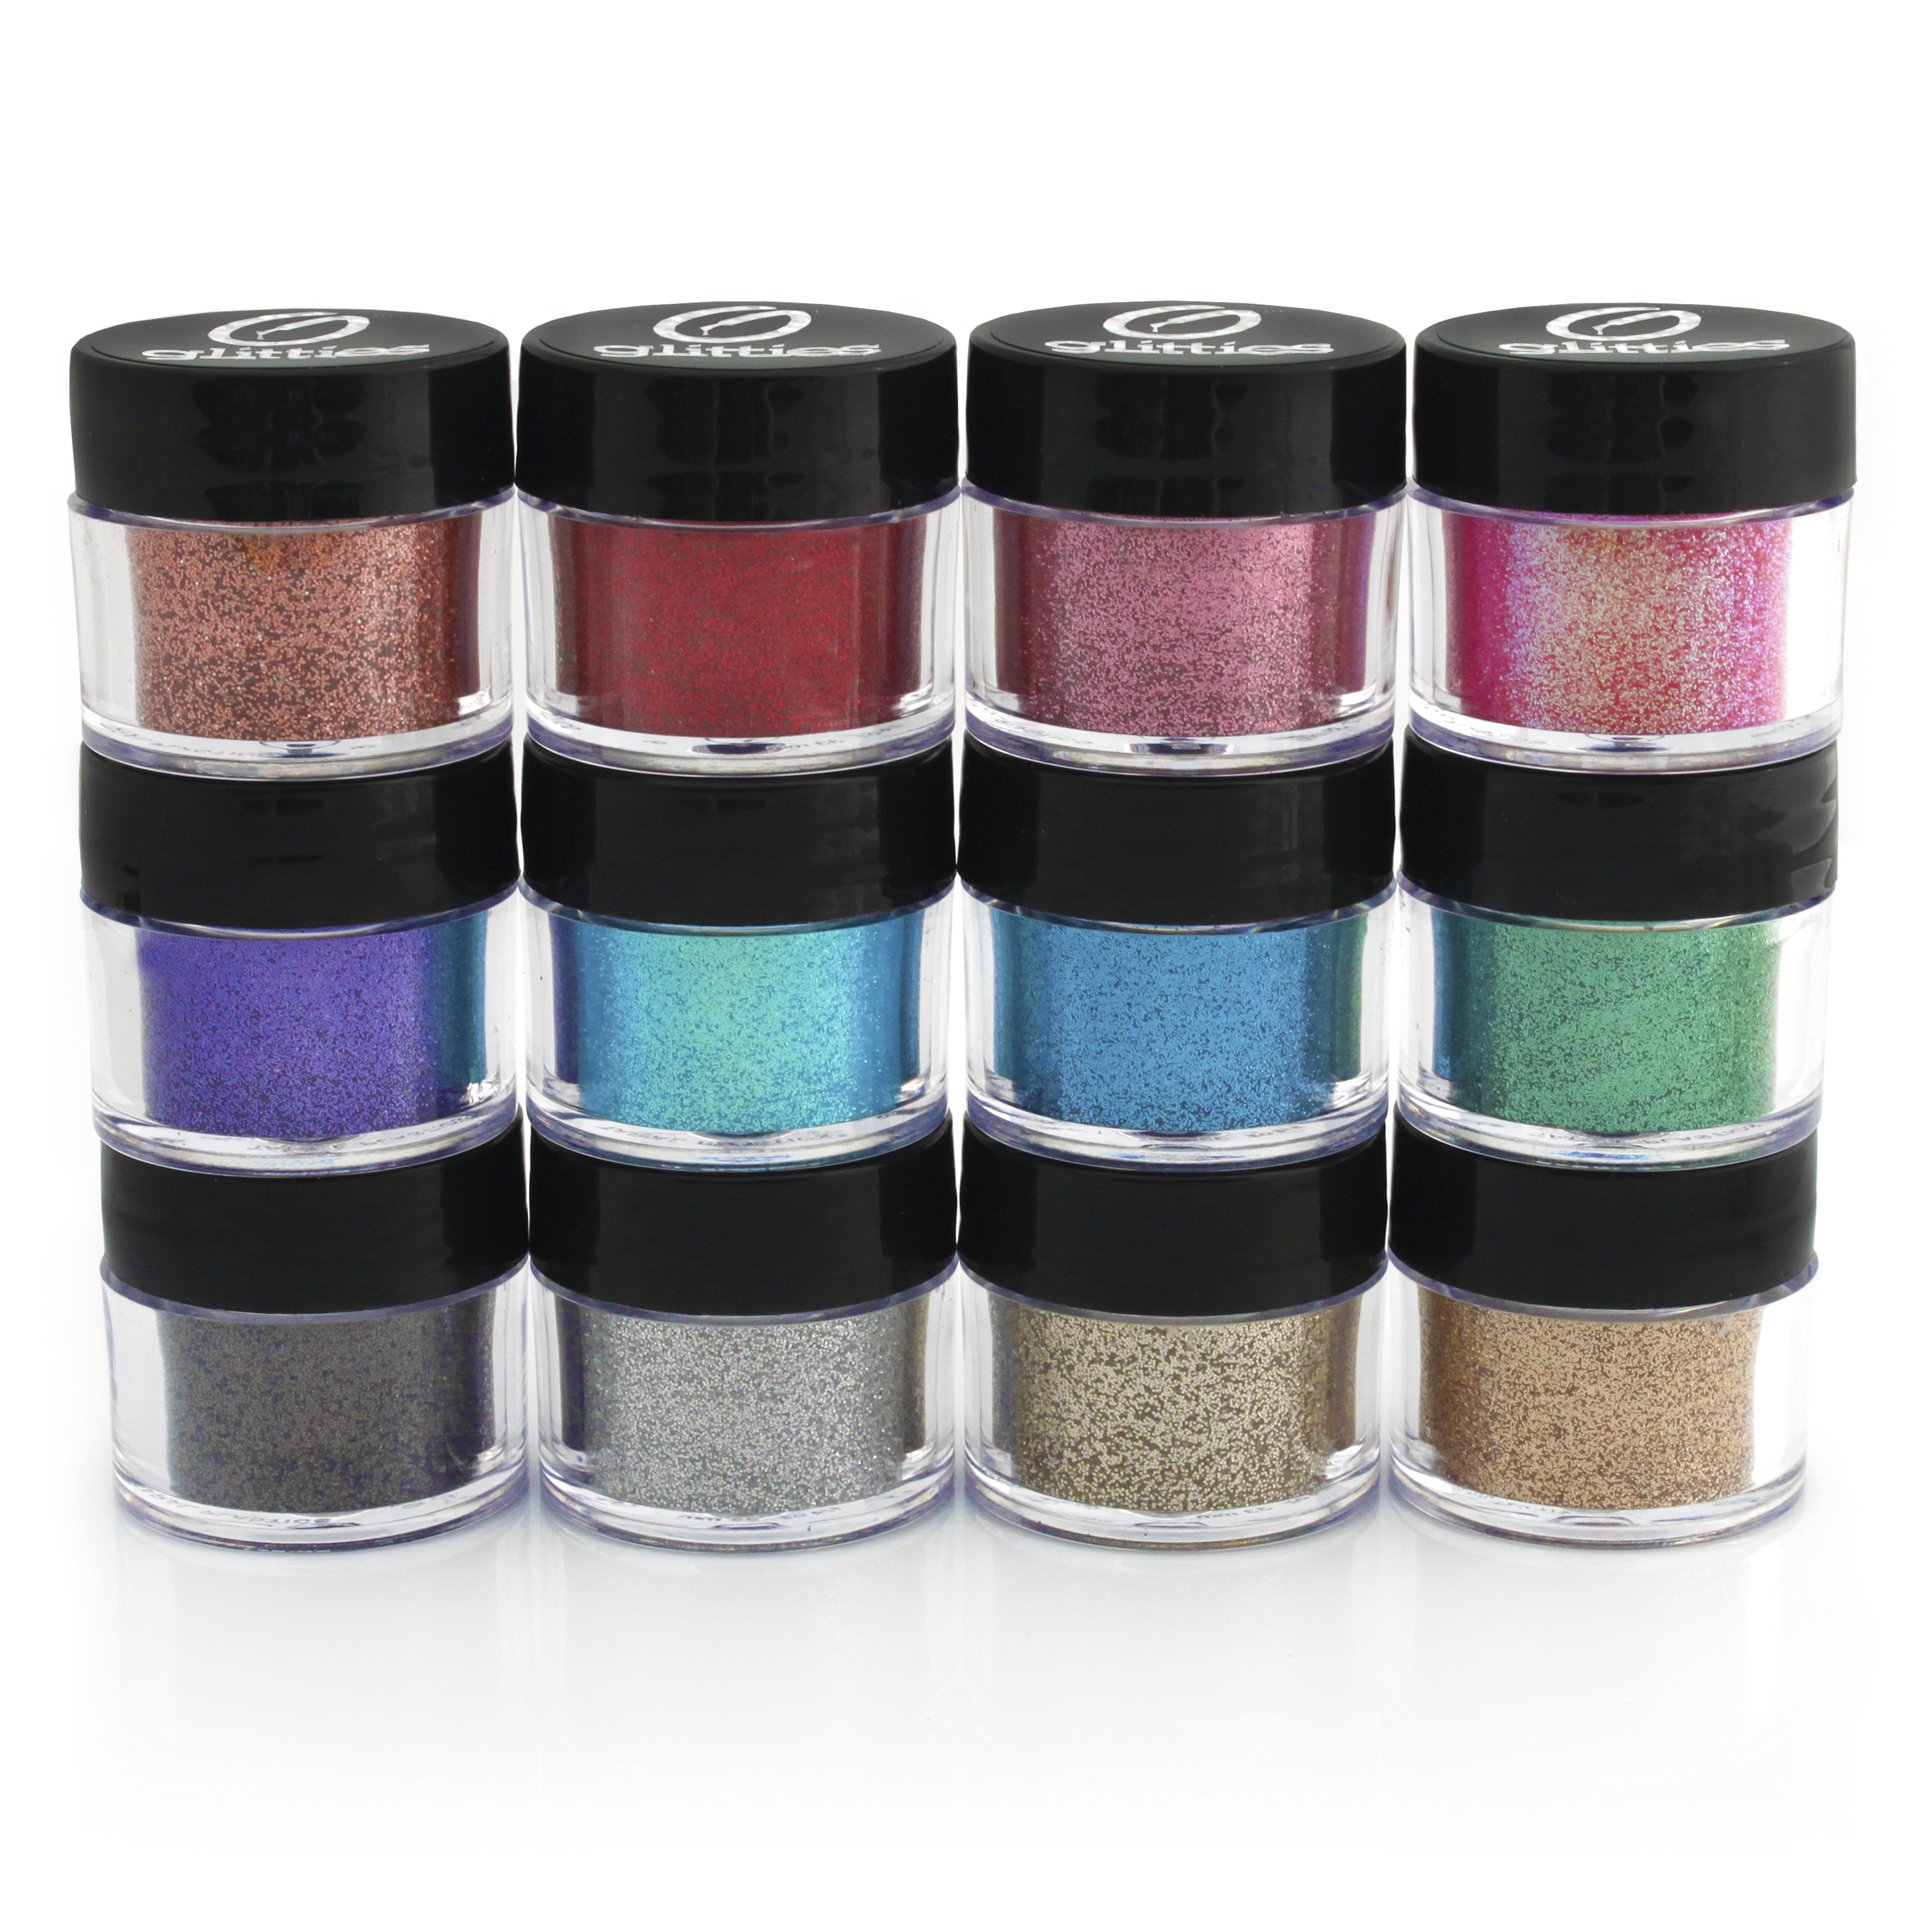 Cosmetic Glitter Powder Kit (12 PK)- Safe for eyeshadow, make up, body and nails.